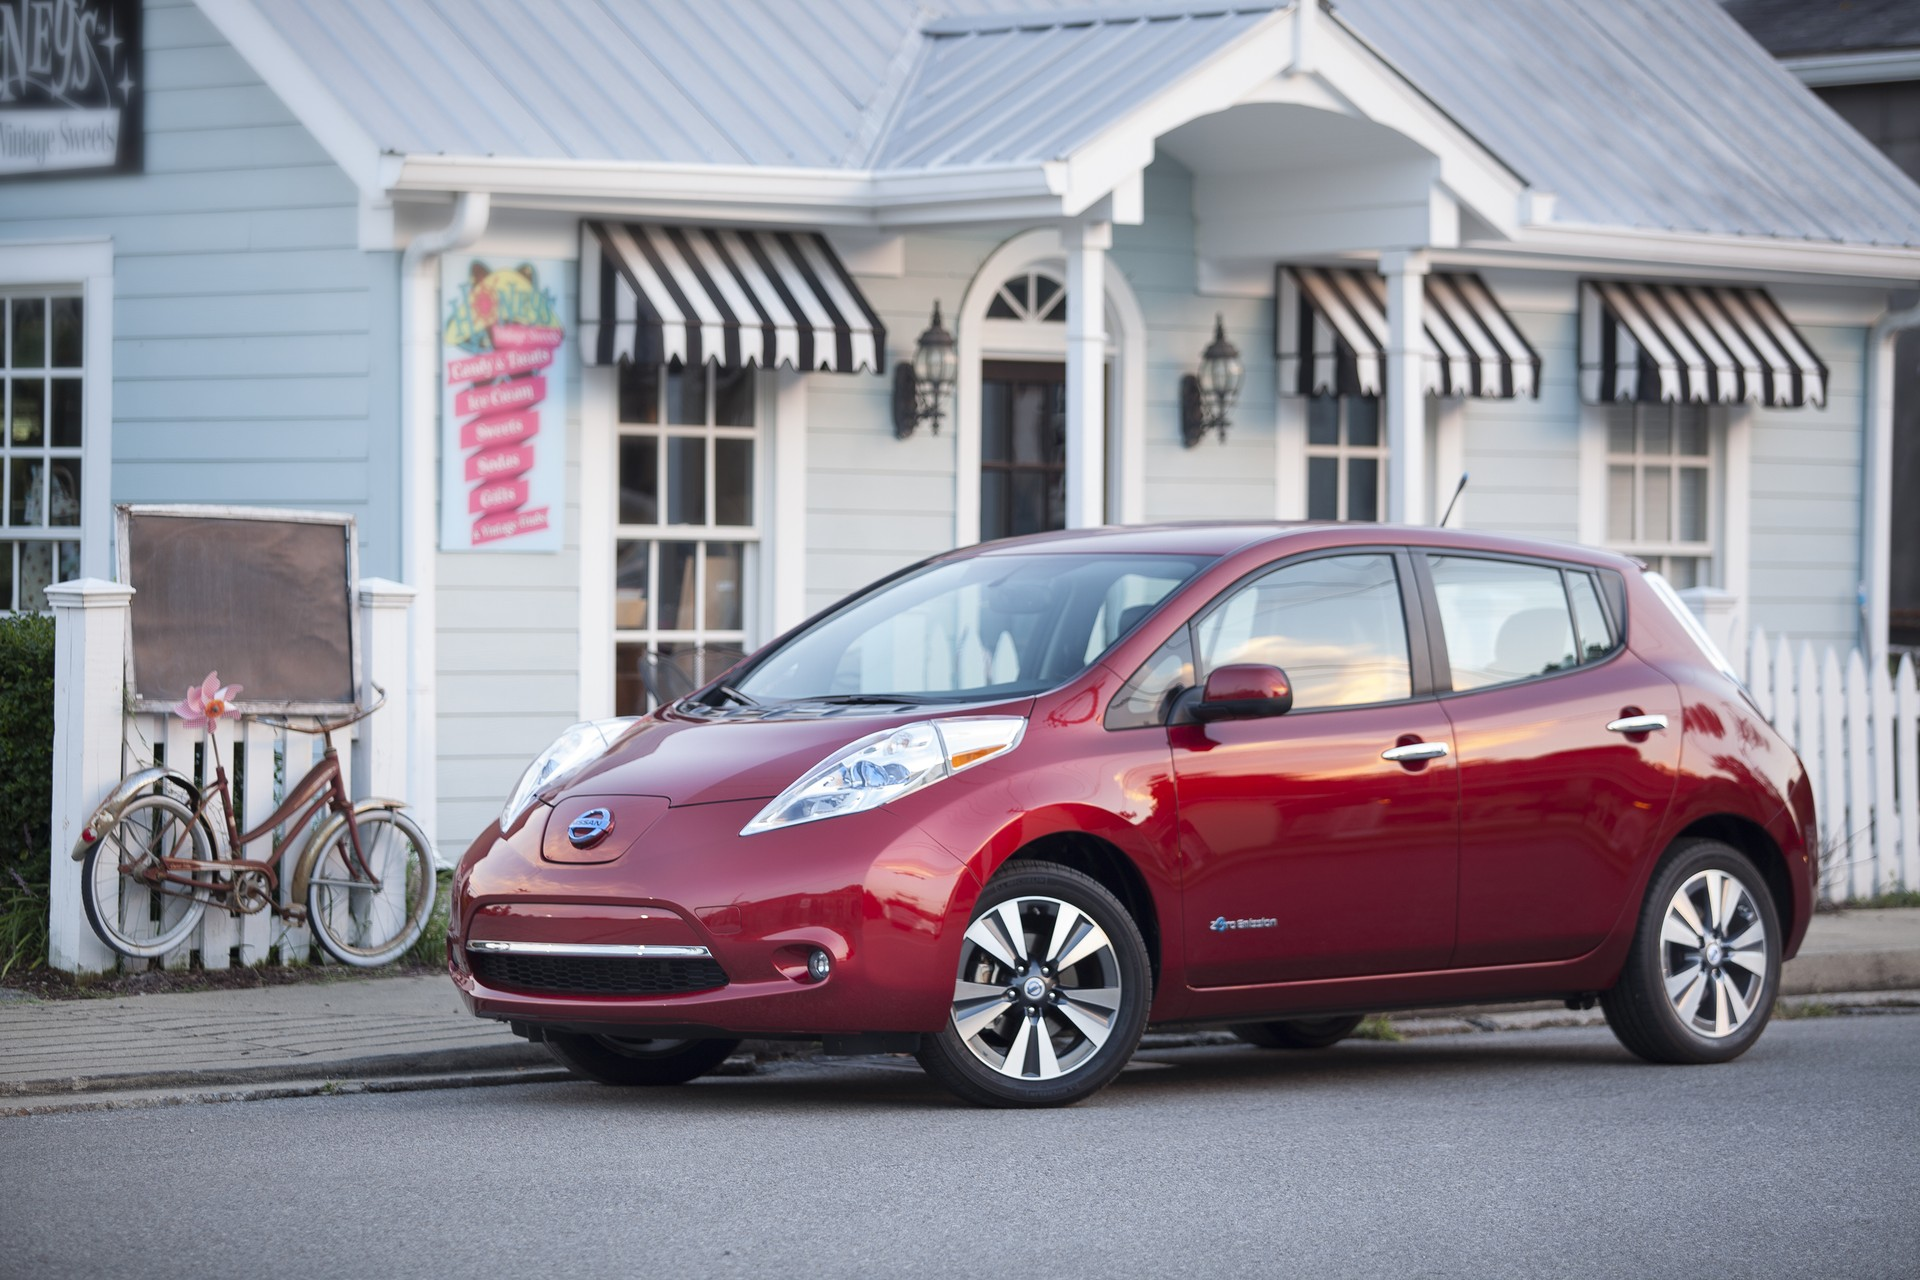 Nissan Leaf Battery Replacement >> Nissan Leaf $5,500 Battery Replacement Loses Money, Company Admits